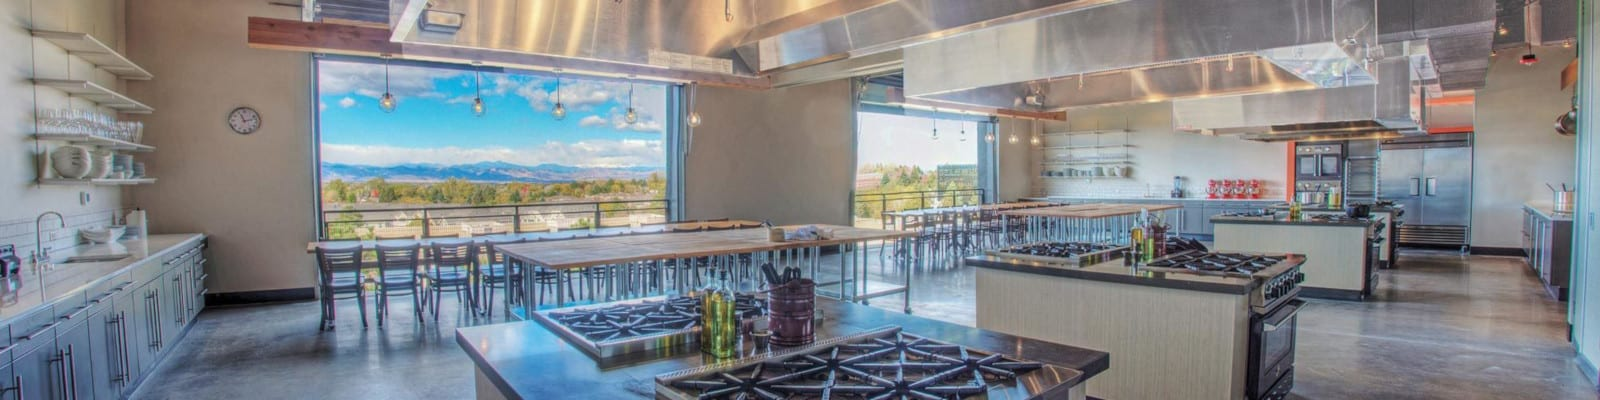 Denver Cooking Classes Uncorked Private Events Kitchen